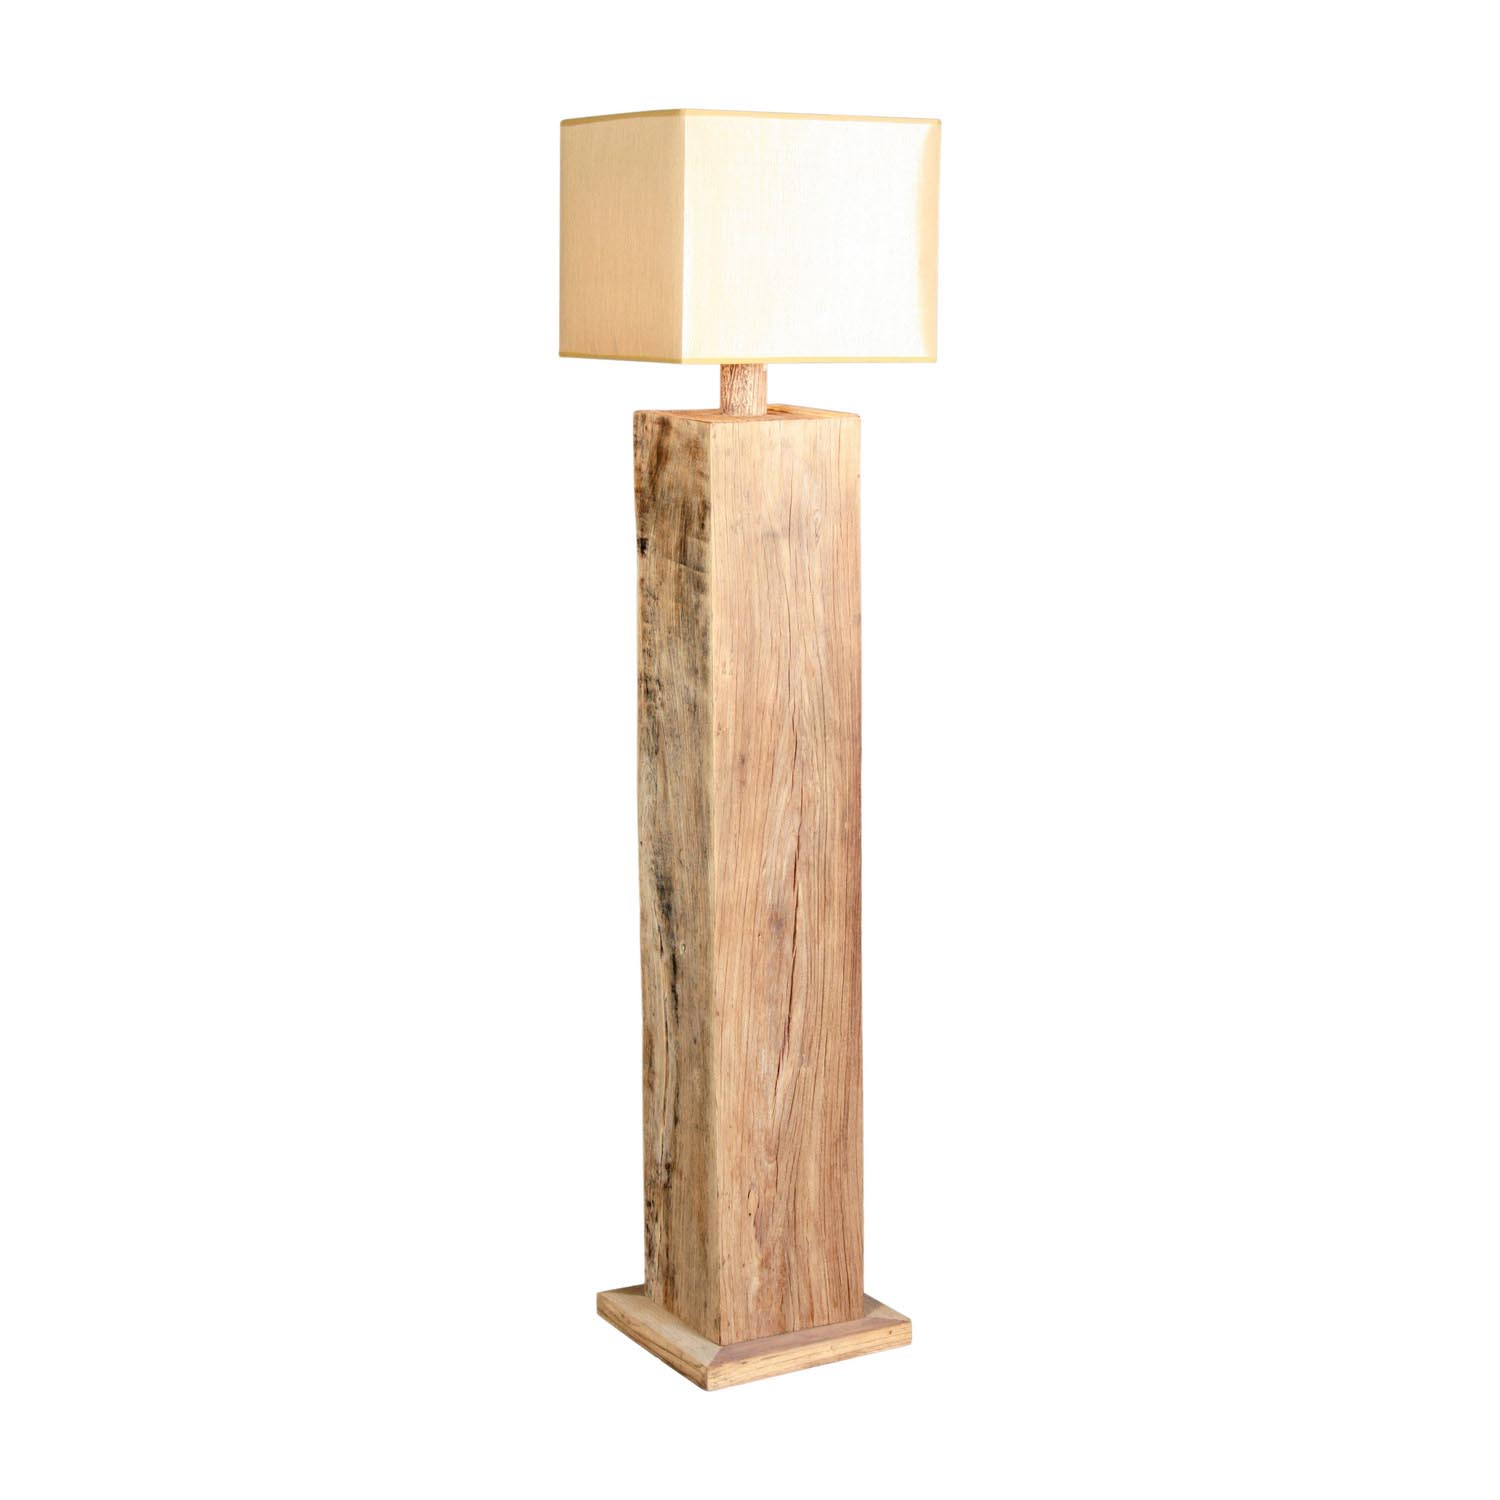 Floor Lamp Wooden Floor Lamps Wooden Base Light Fixtures Design Ideas